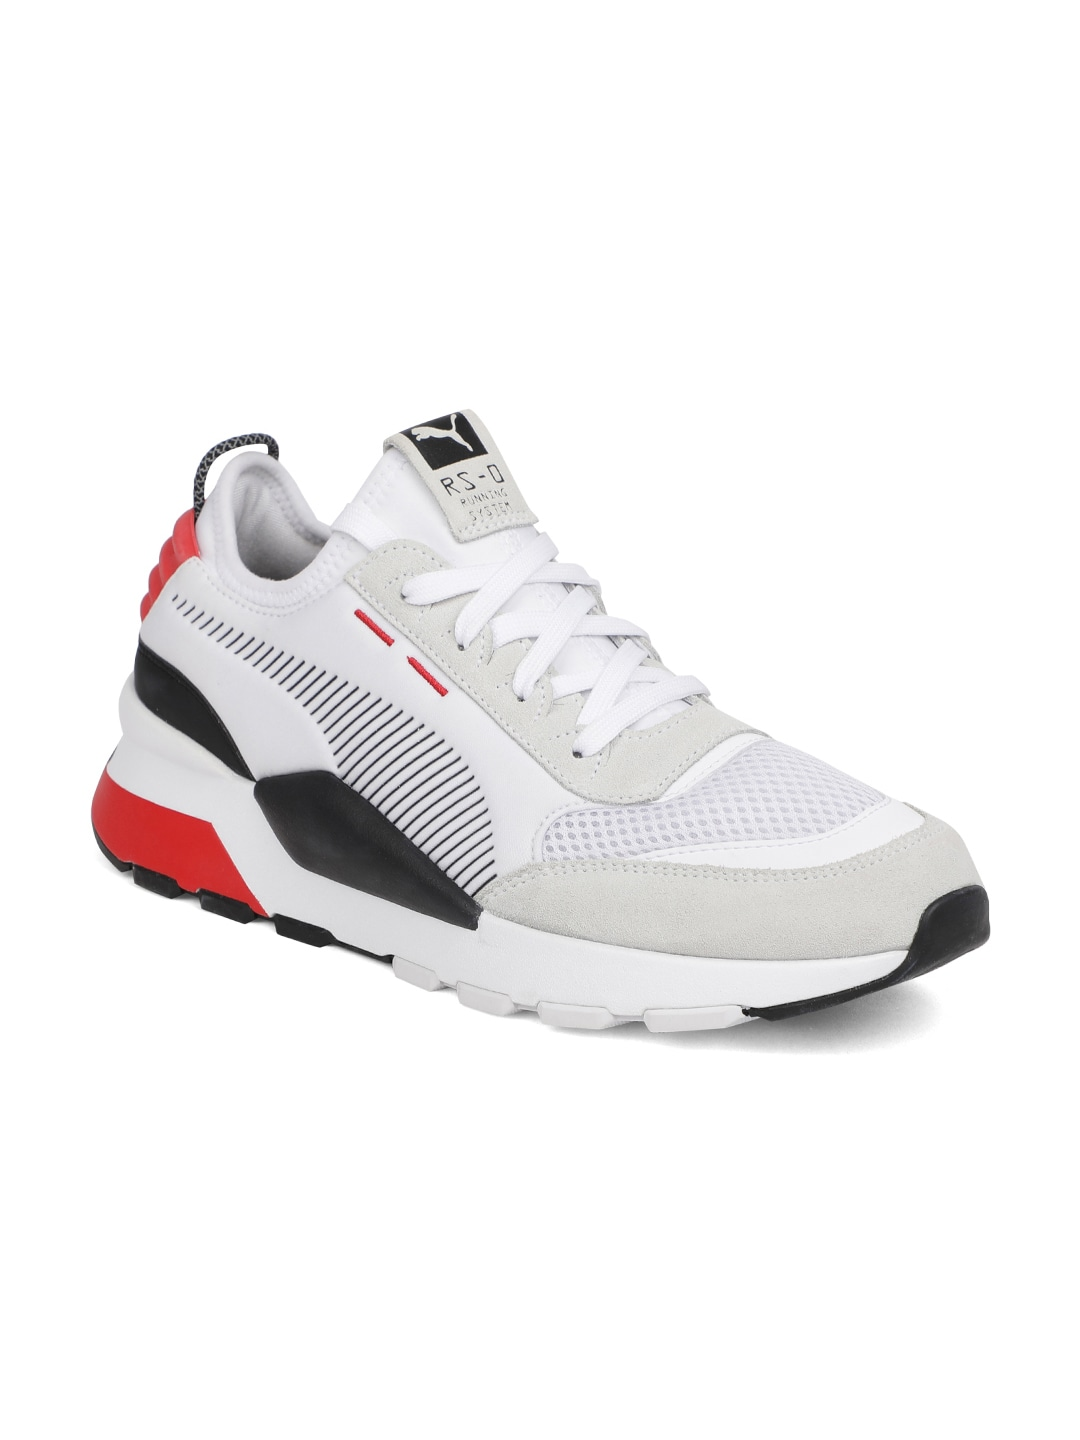 79cf1410a26 Puma Football Shoes - Buy Puma Football Shoes Online in India